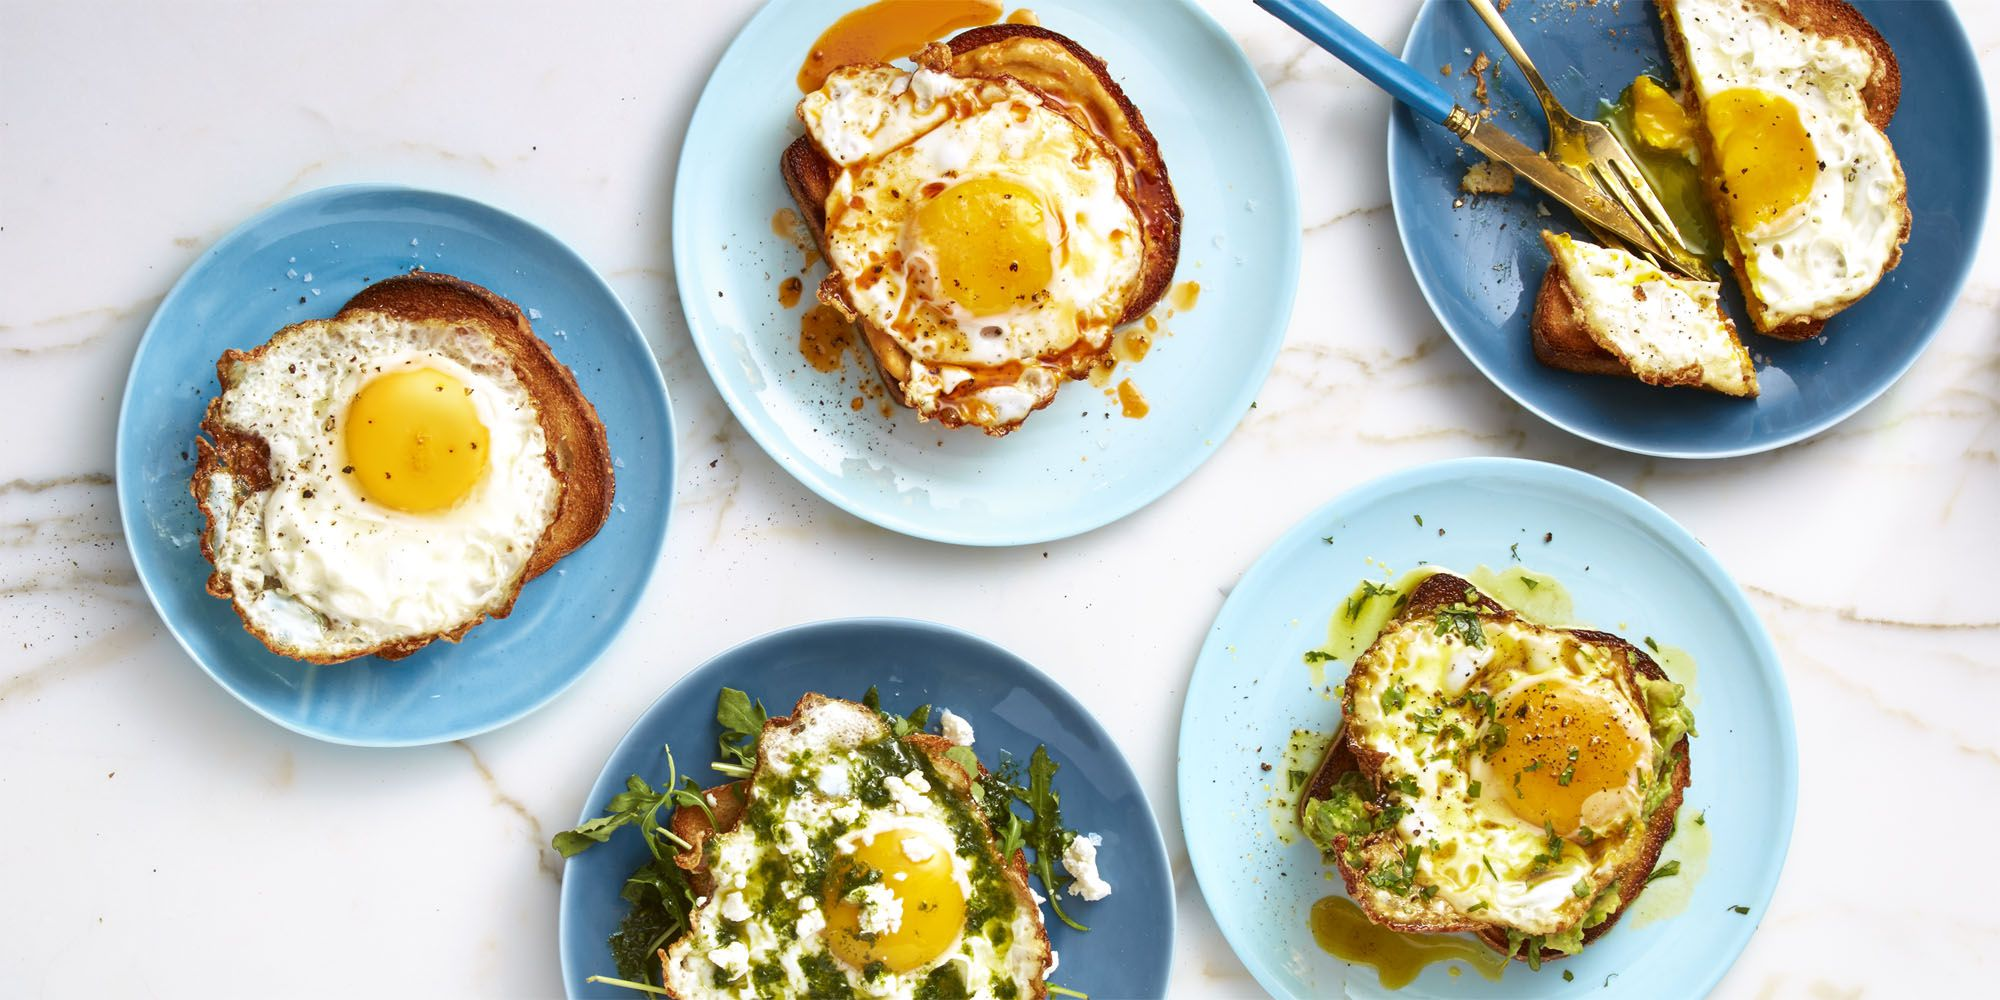 48 Easy Egg Recipes - Ways to Cook Eggs for Breakfast